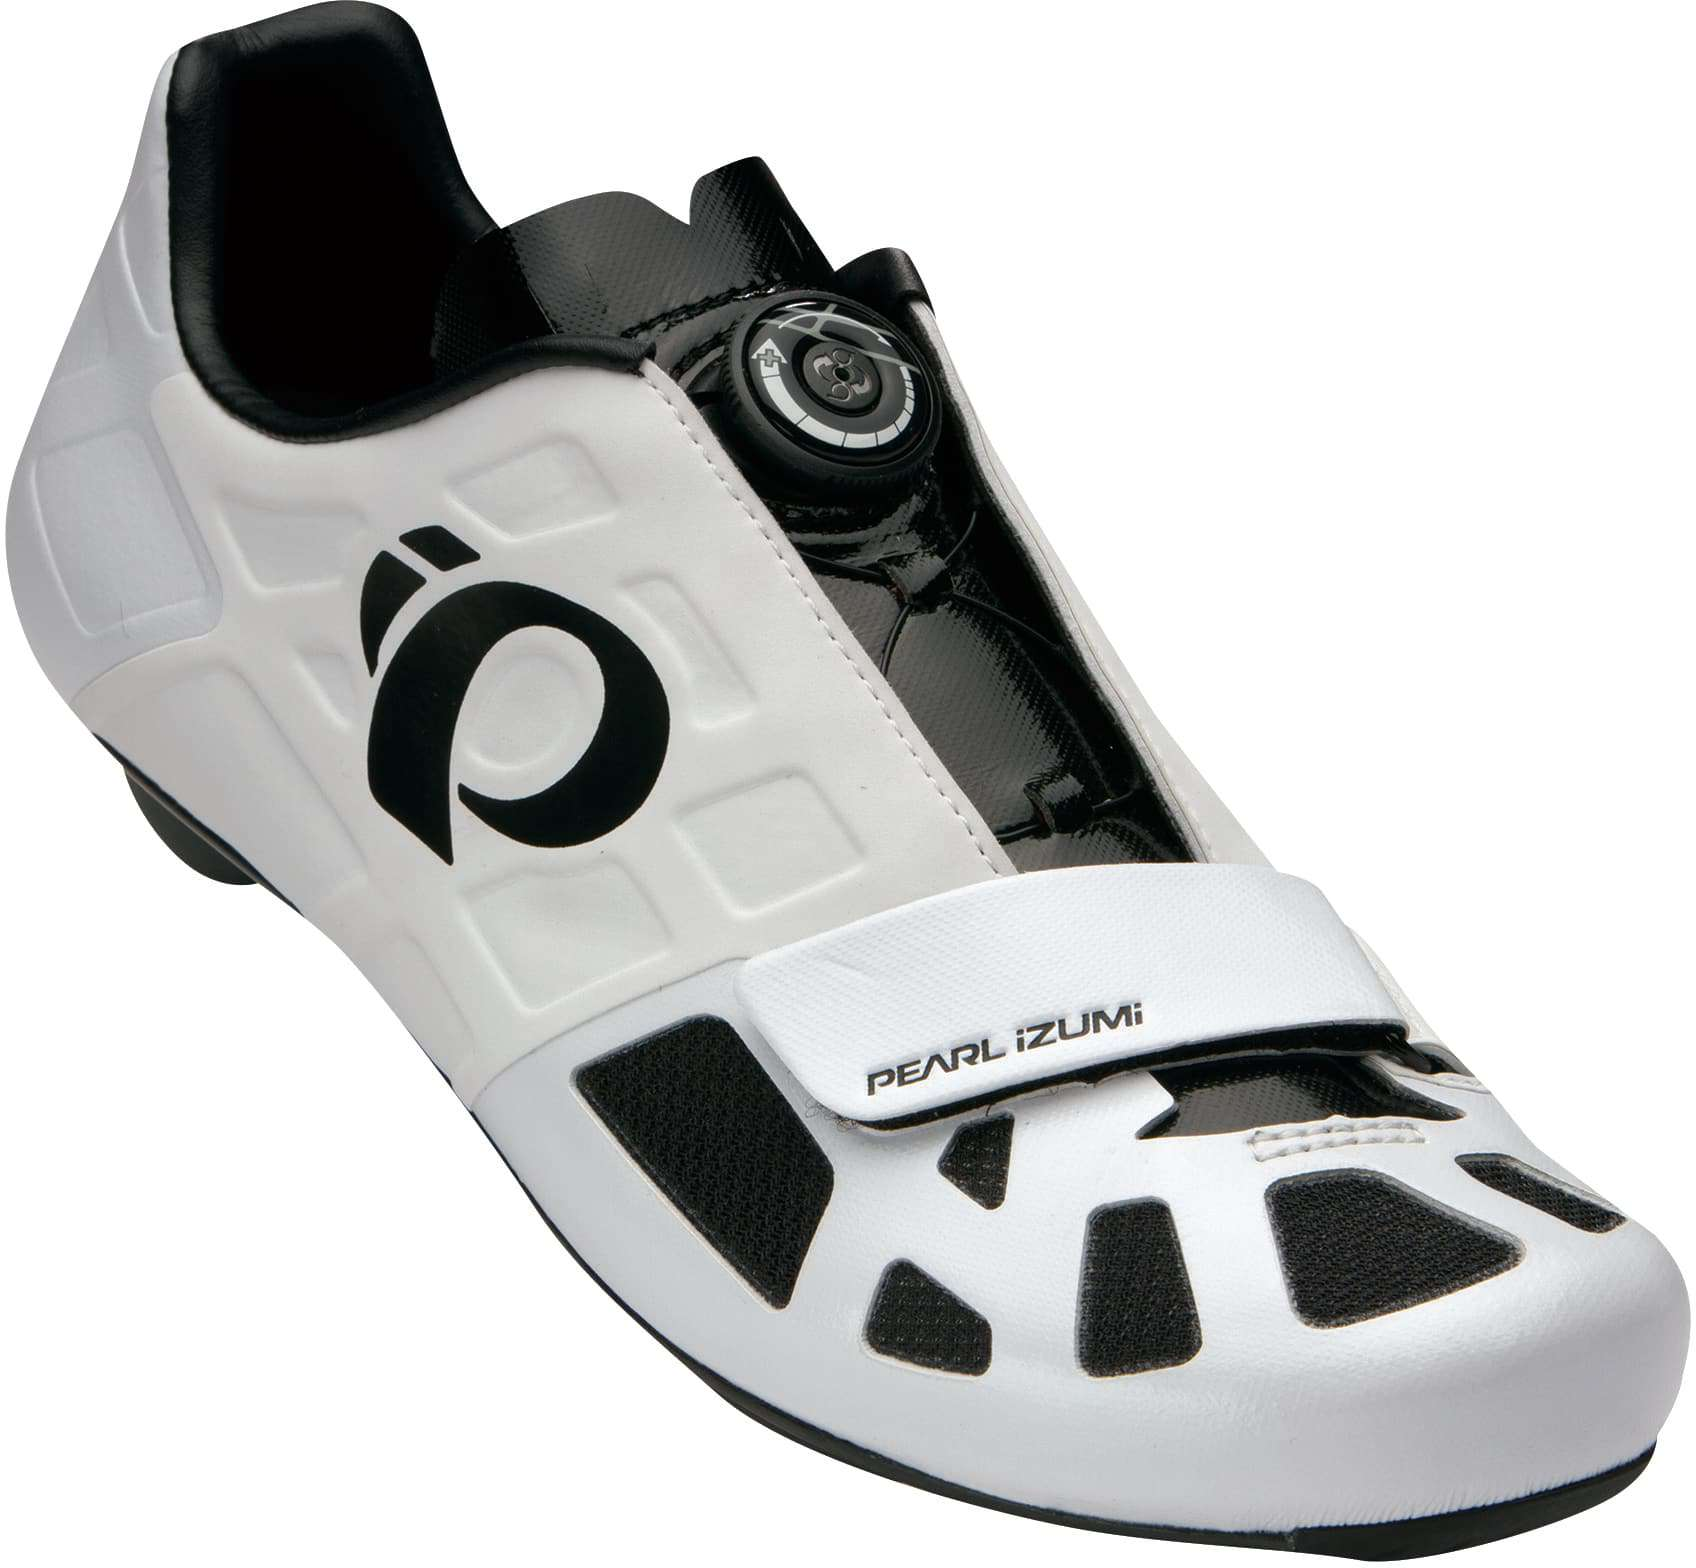 15 Best Cycling Shoes and Pedals of 2018 - Buying Guide and Reviews 61